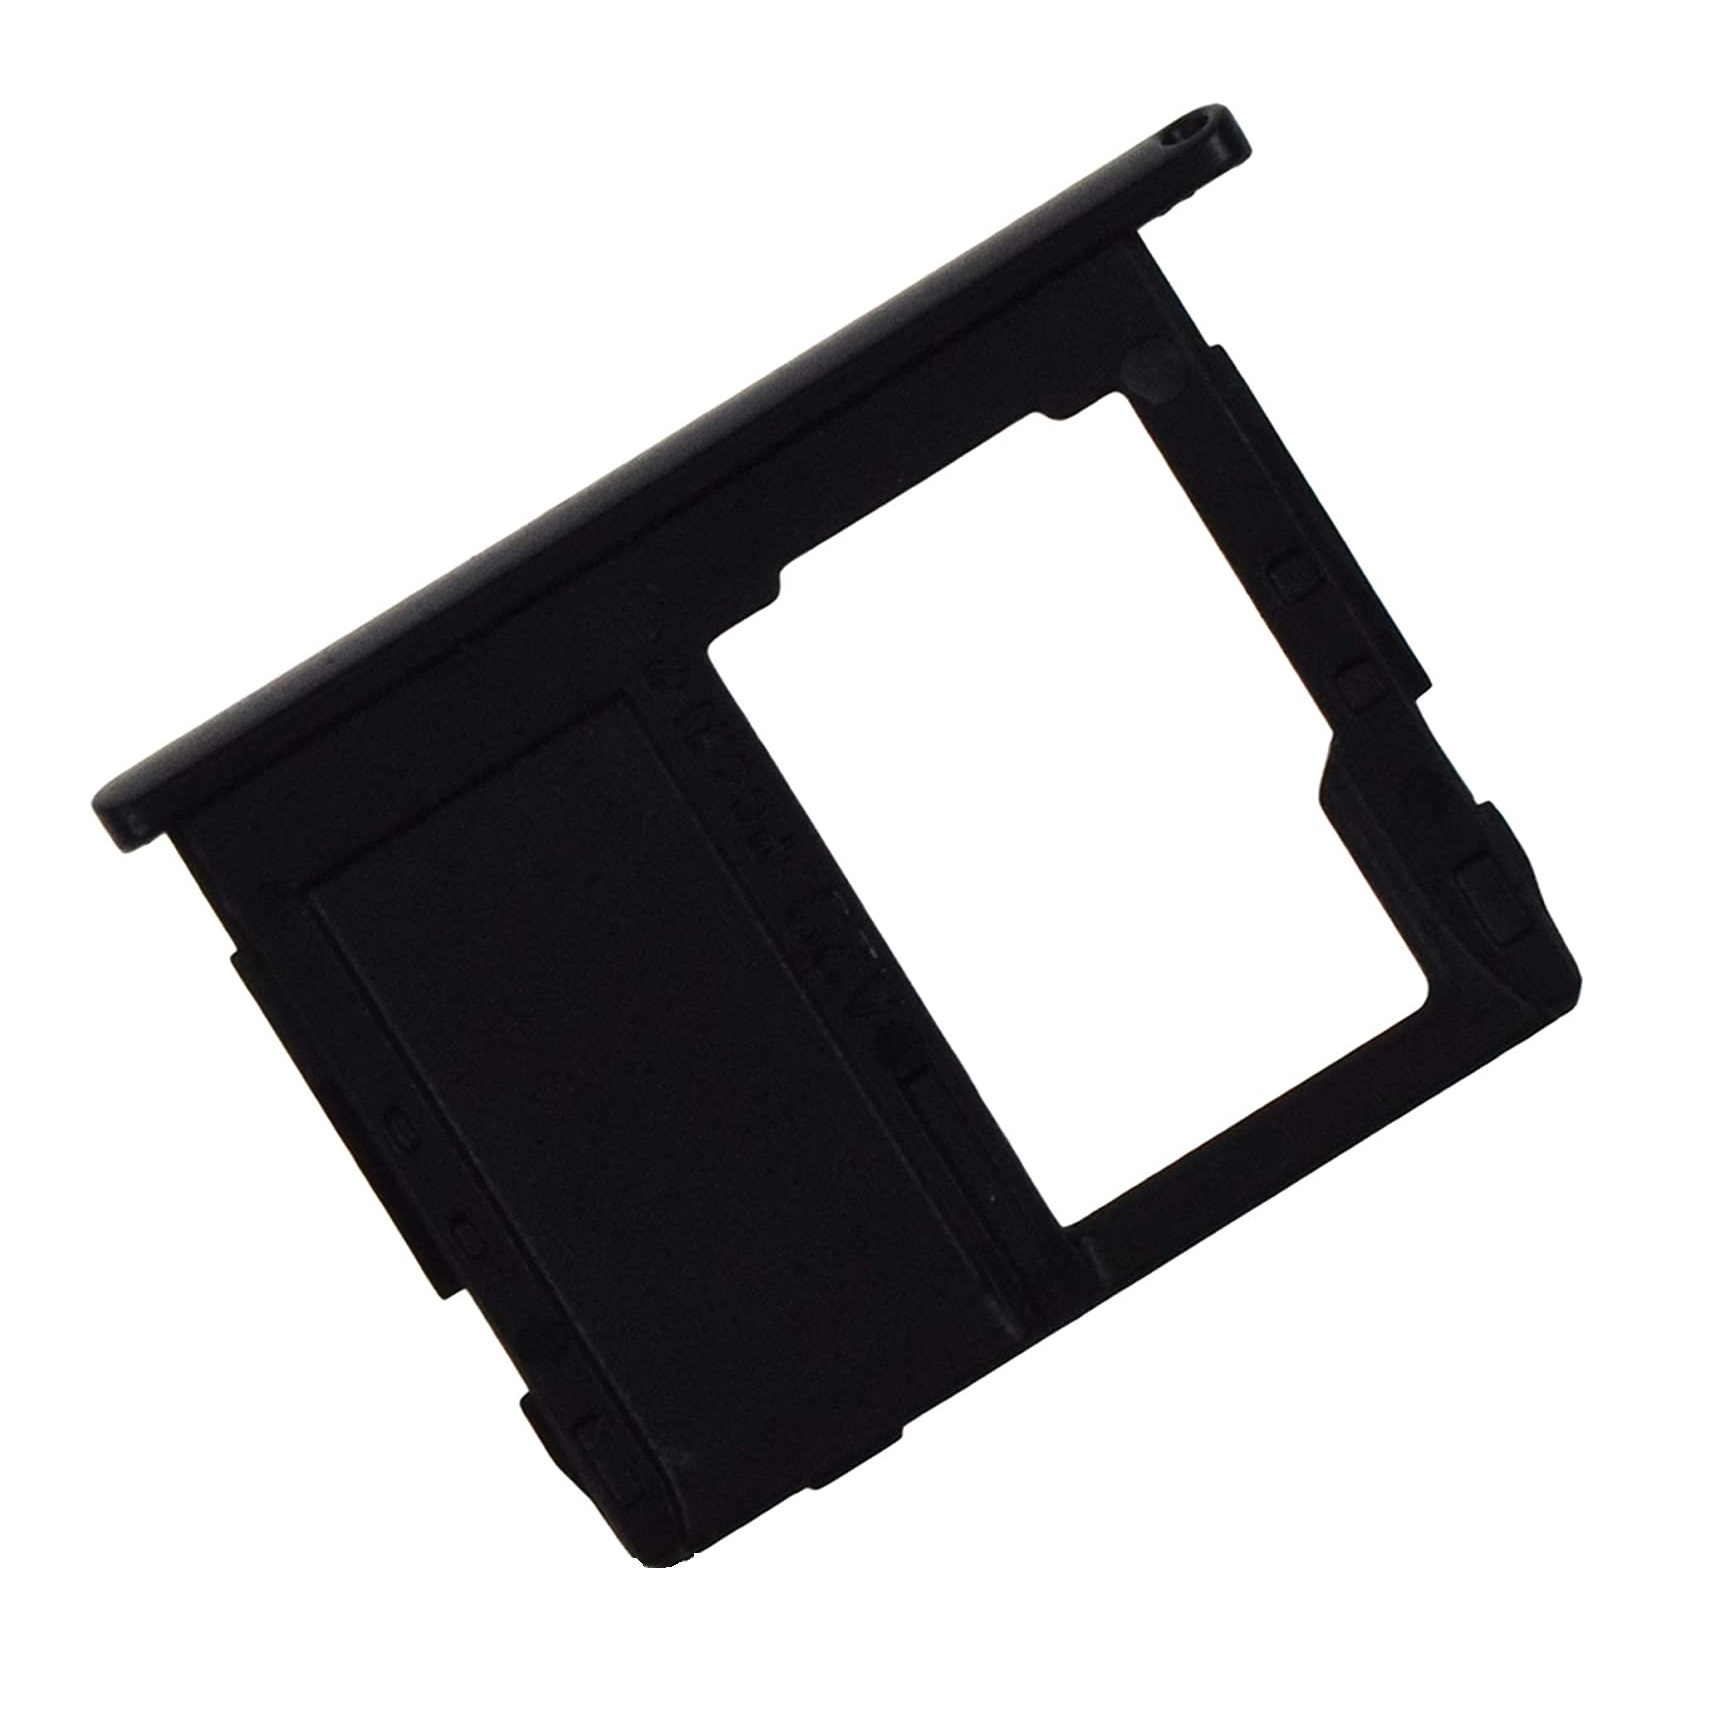 Simtray For Galaxy T590